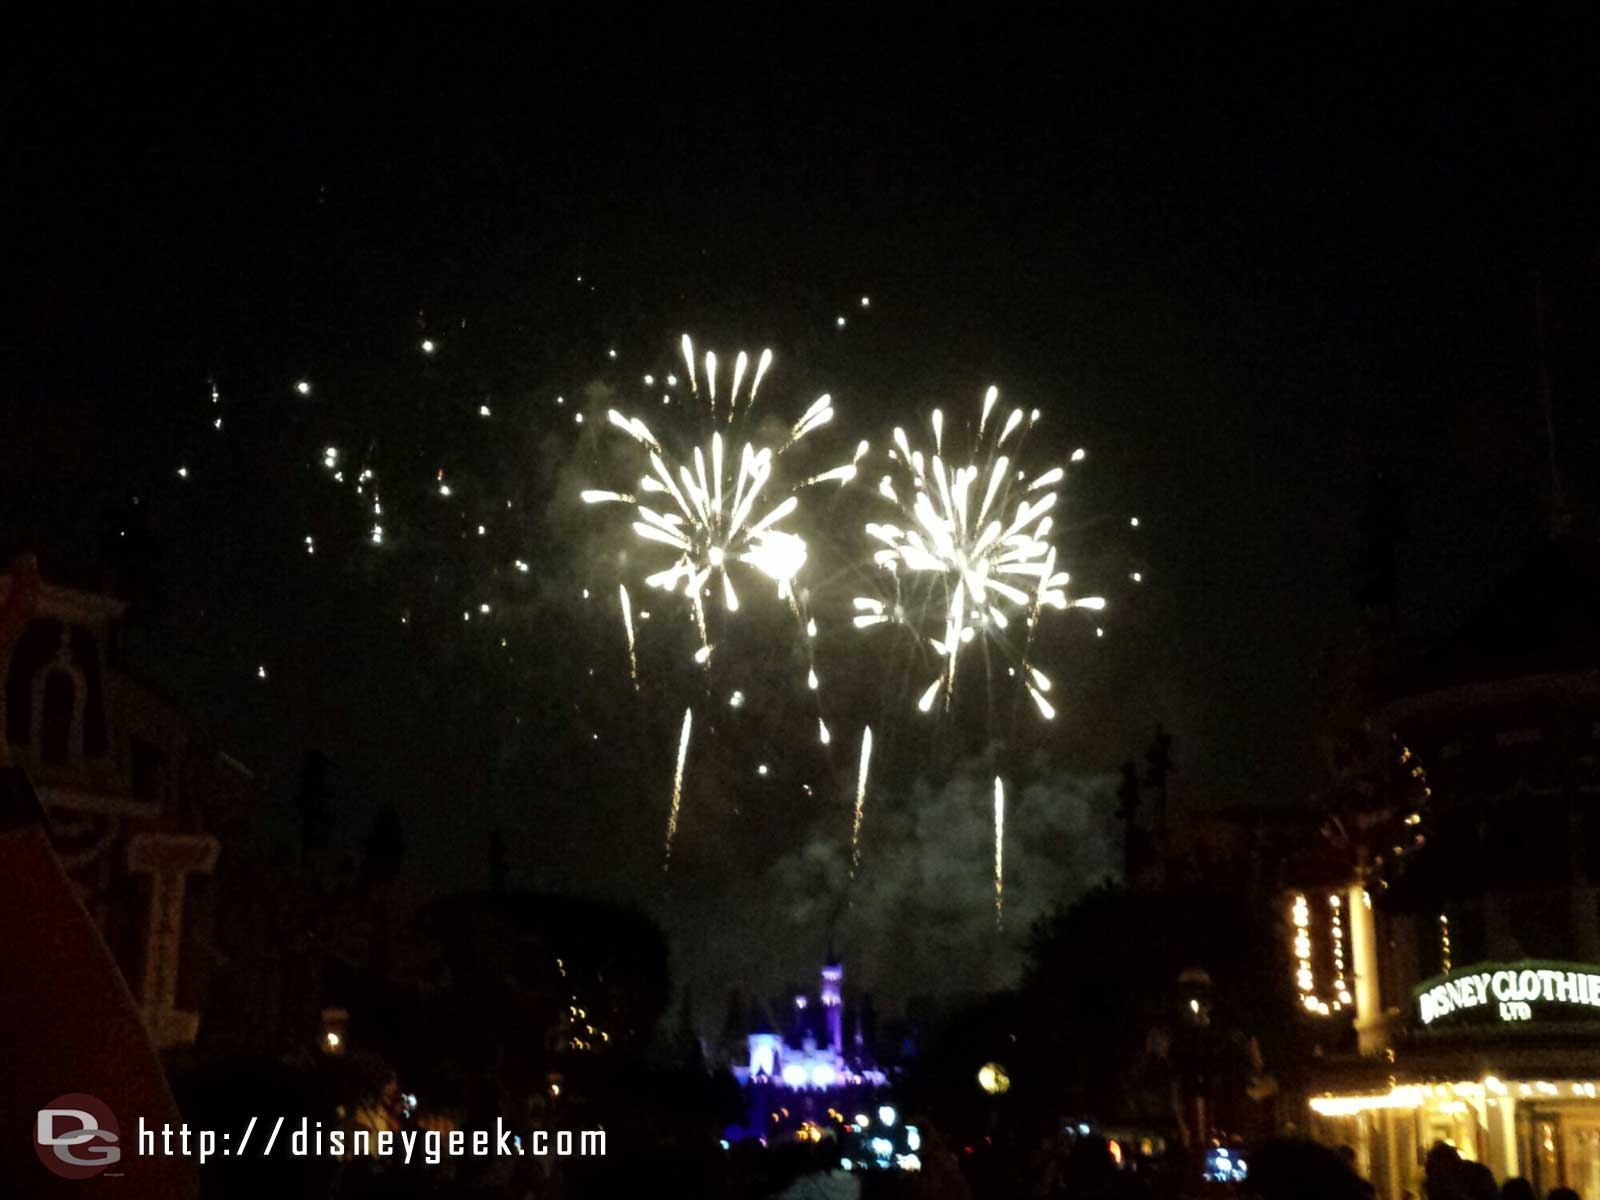 No sign of Tinkerbell during the beginning of Magical this evening